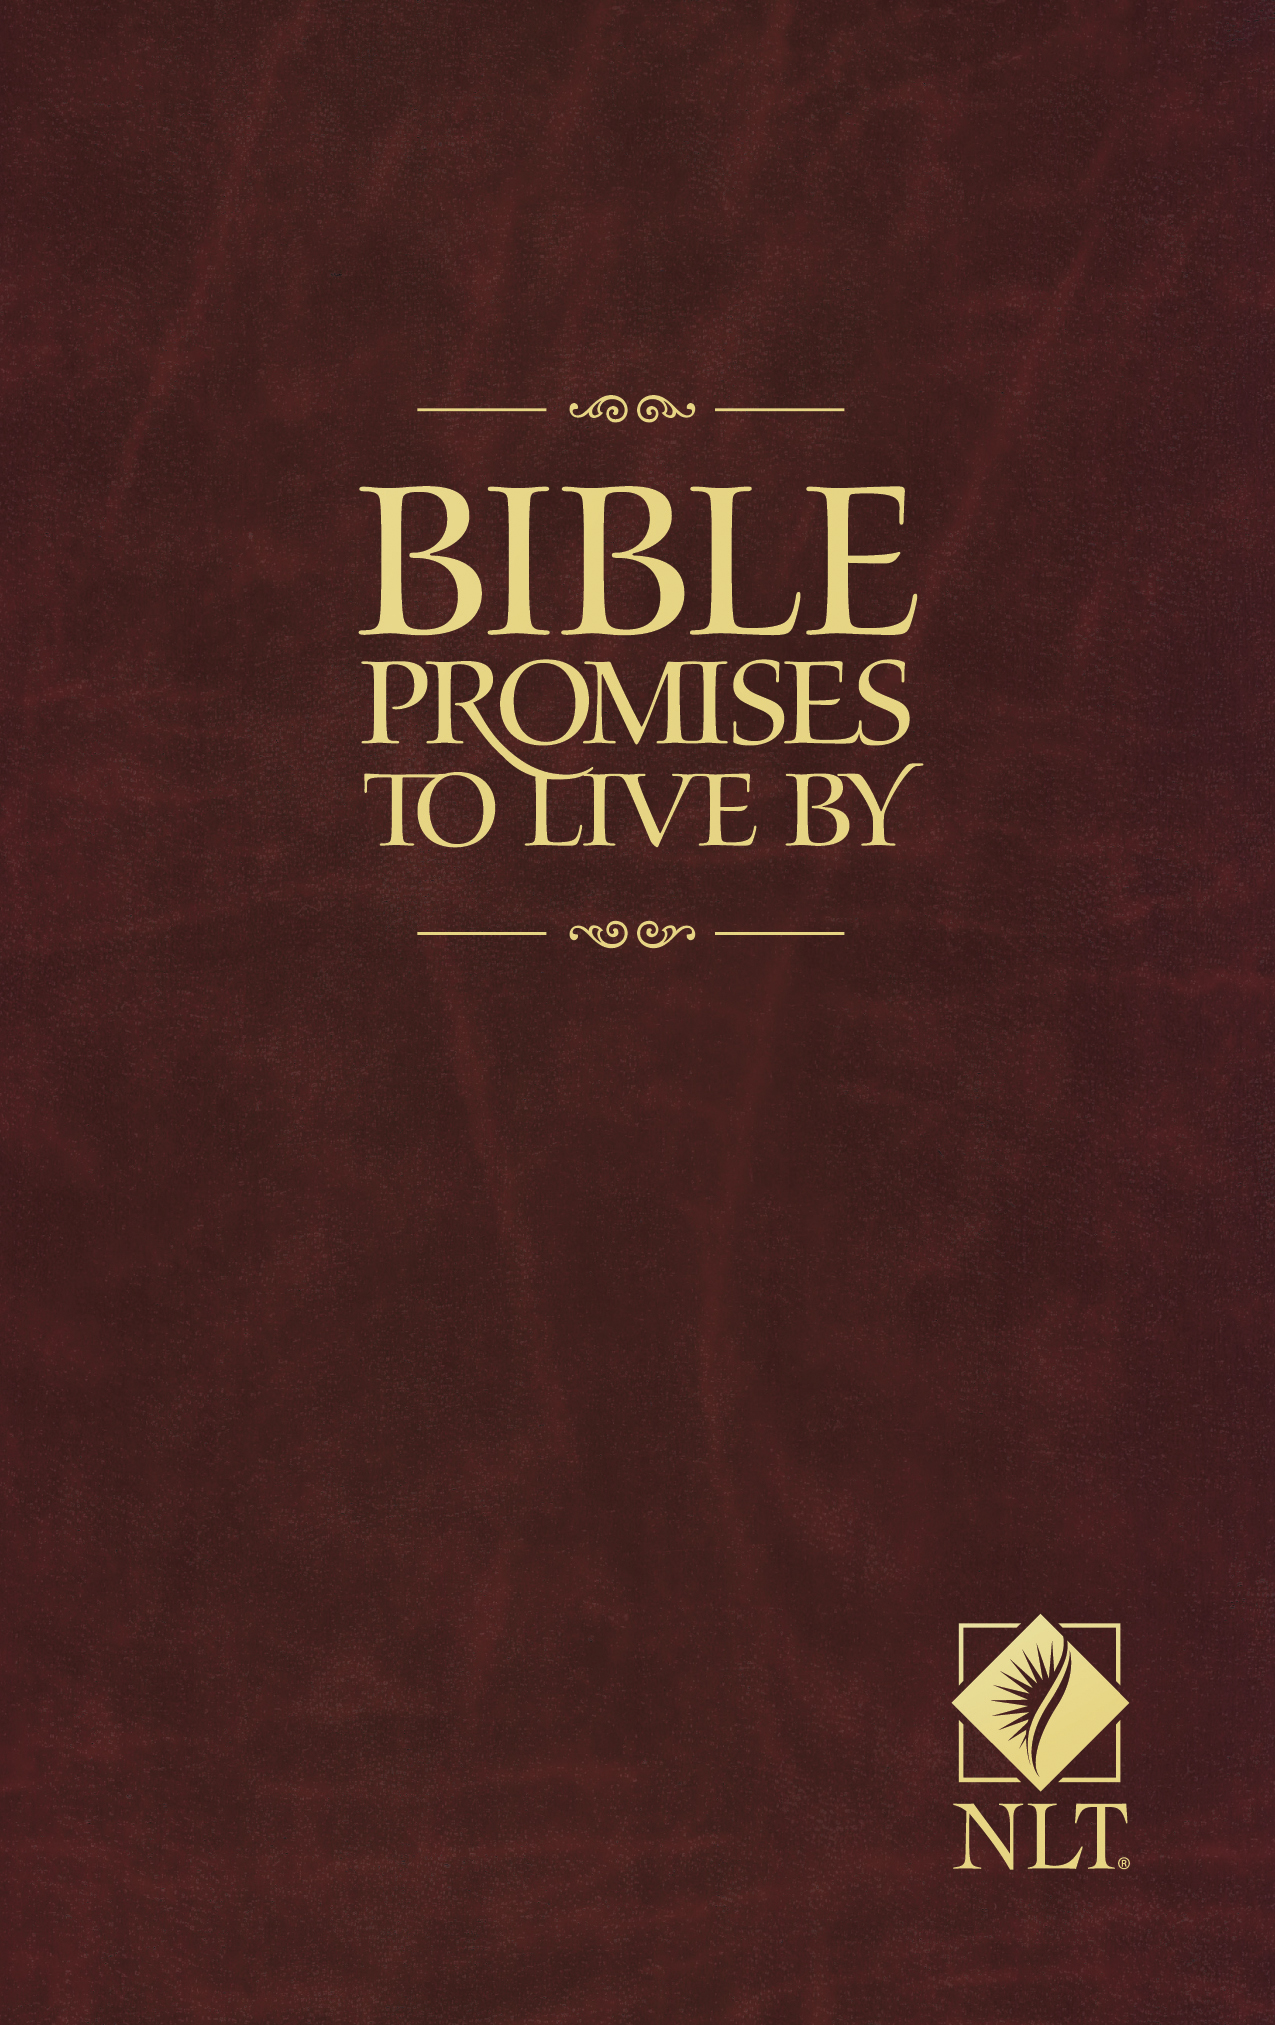 Bible Promises to Live By